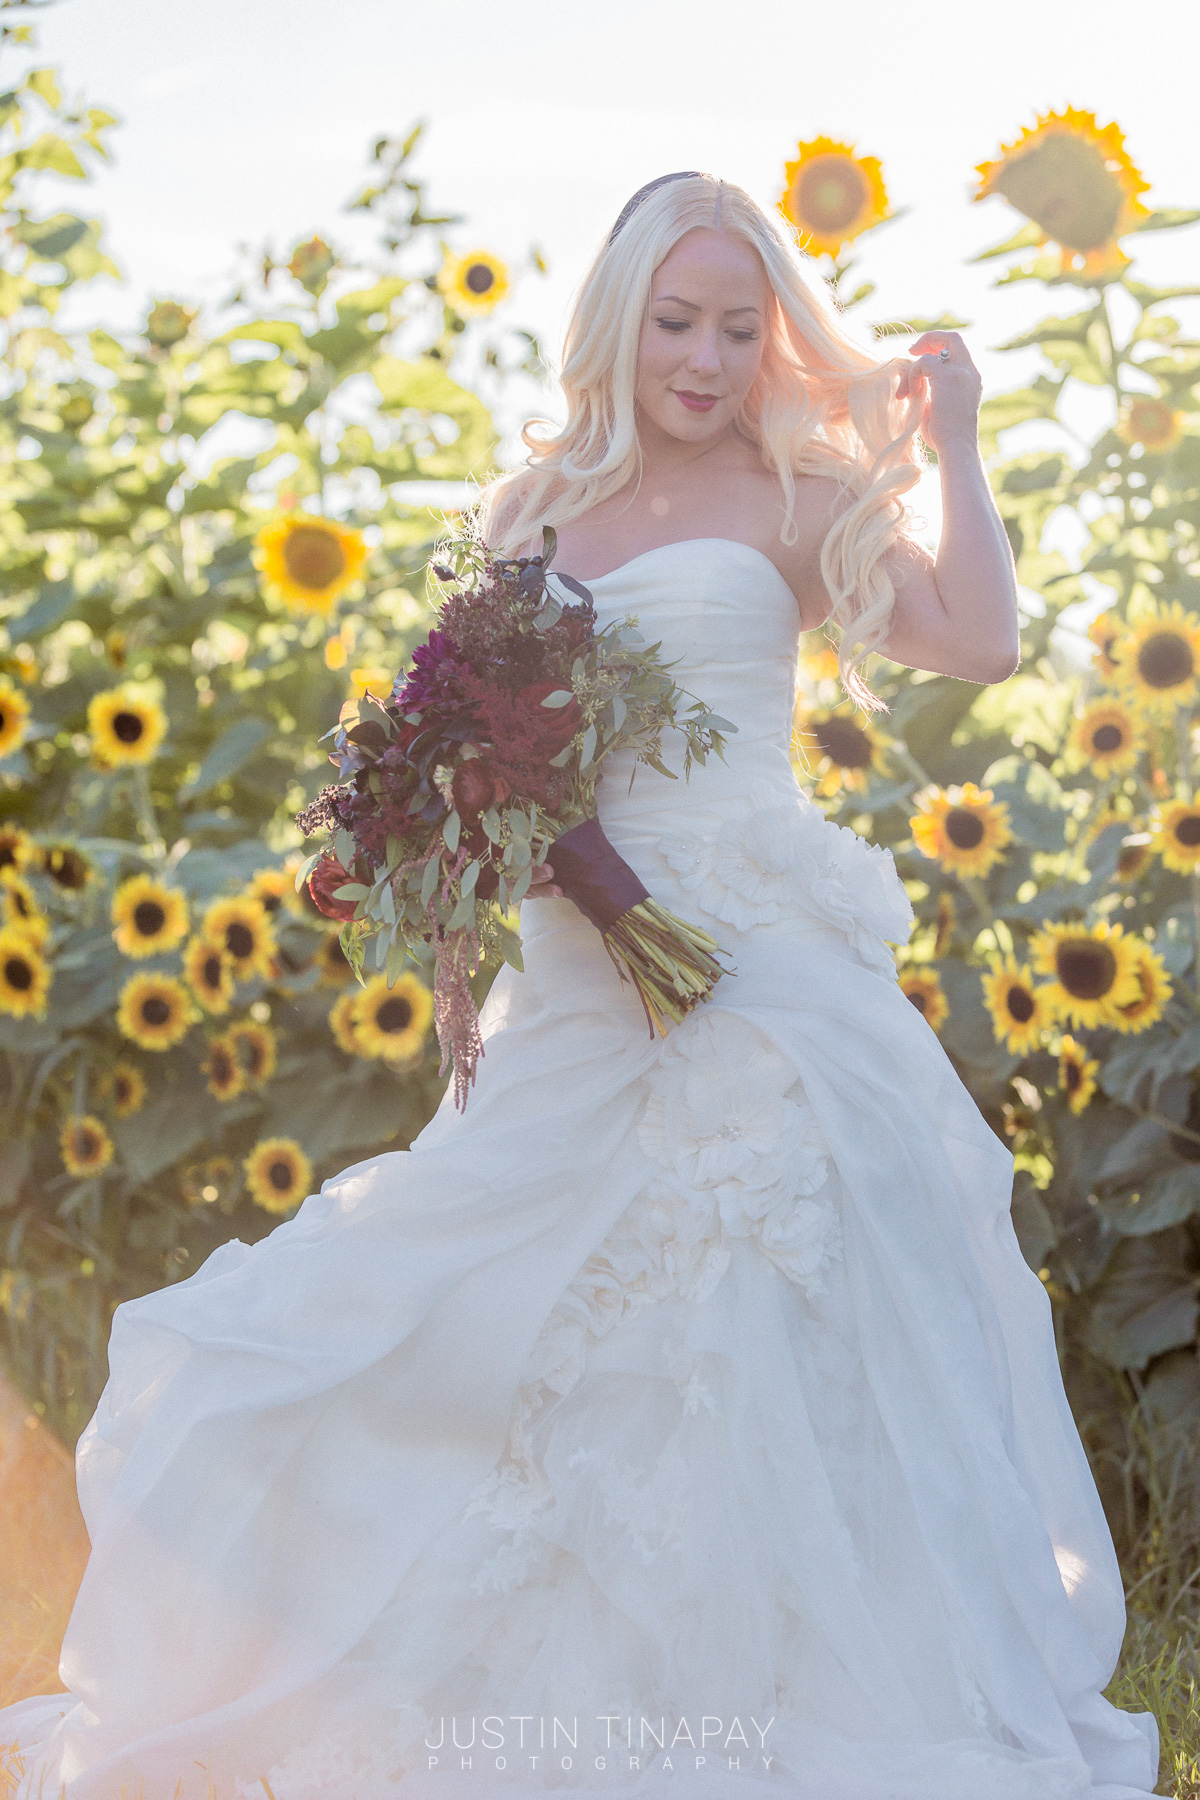 We love this boho chic ballgown and it's perfect for a garden wedding. Check out the blog to get ideas for your outdoor wedding day and download the venue guide for free!